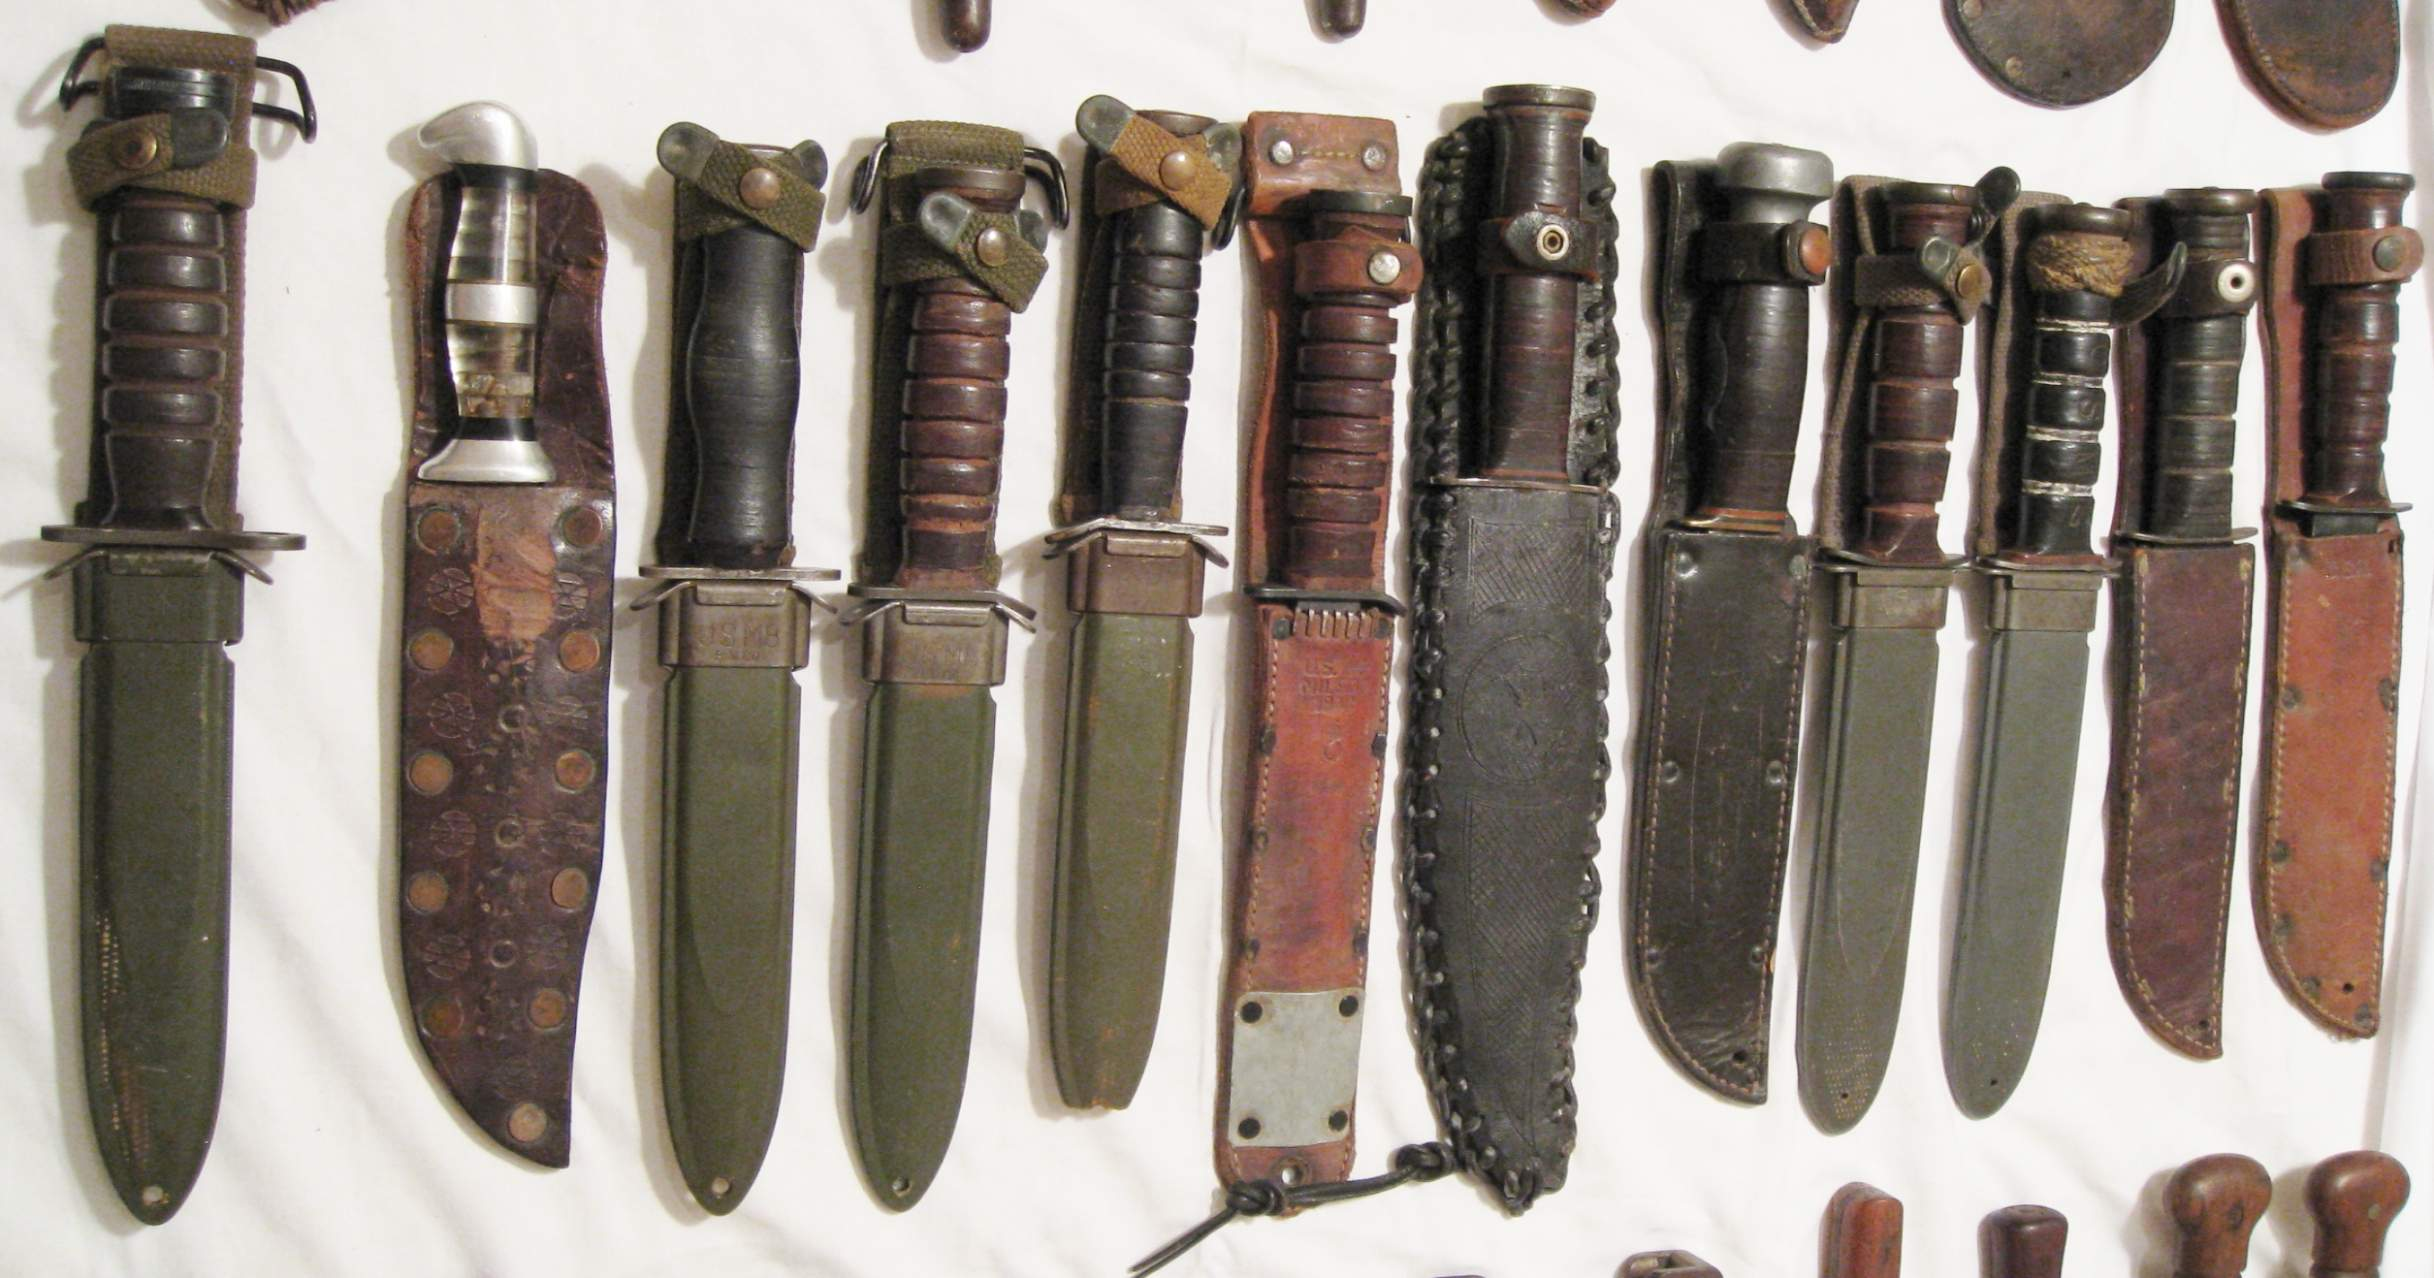 knife collection my knife collection